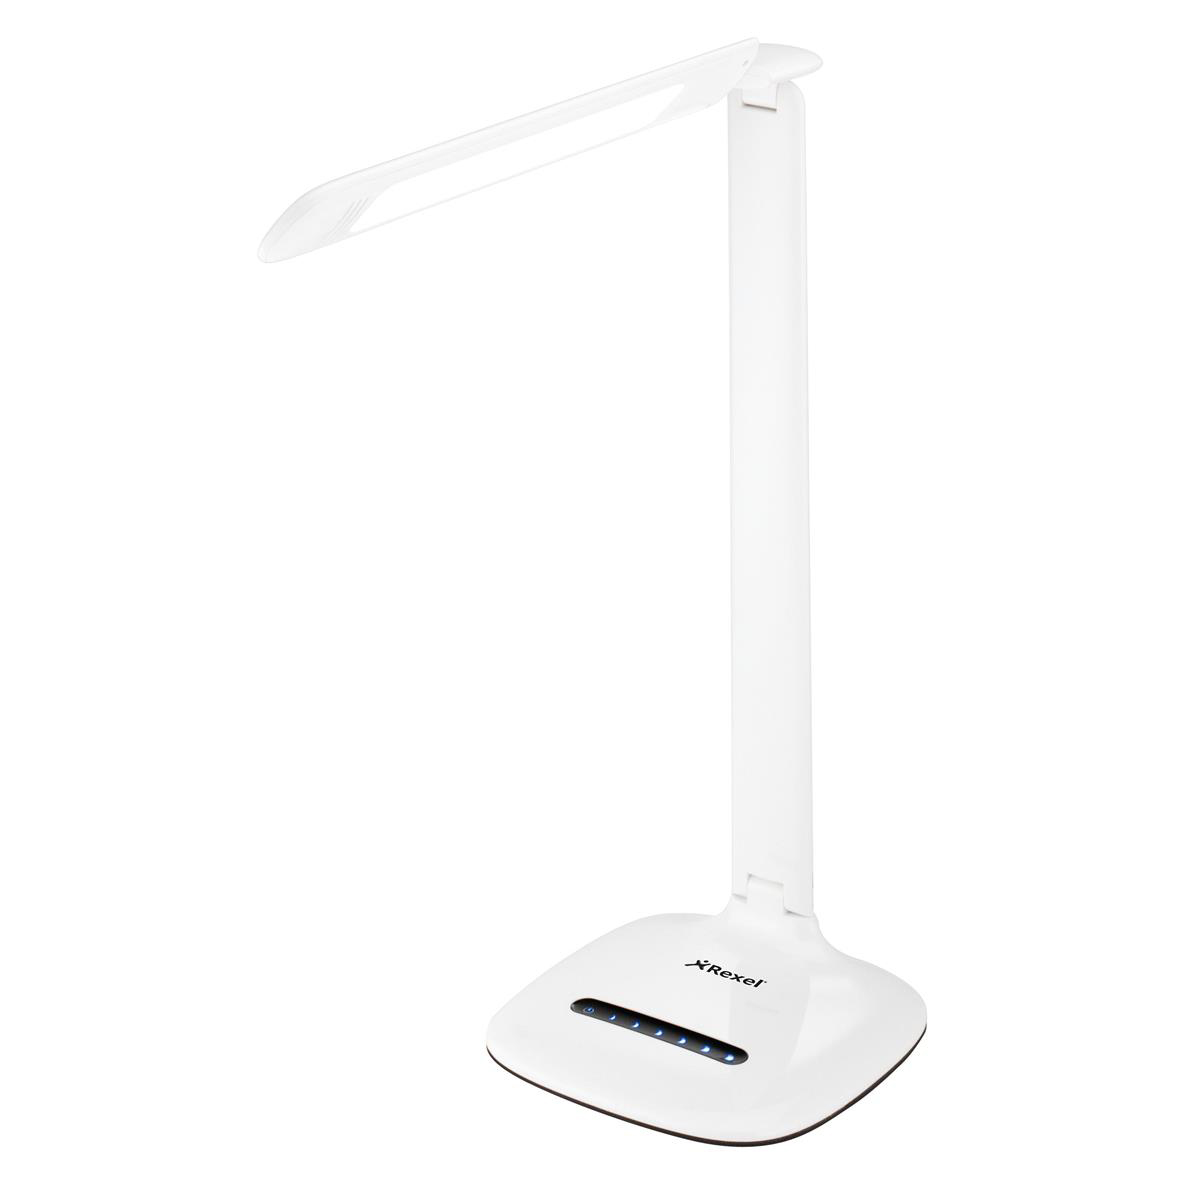 Rexel ActiVita Daylight Strip Desk Lamp 6 Brightness Settings Fully Adjustable Head White Ref 4402013